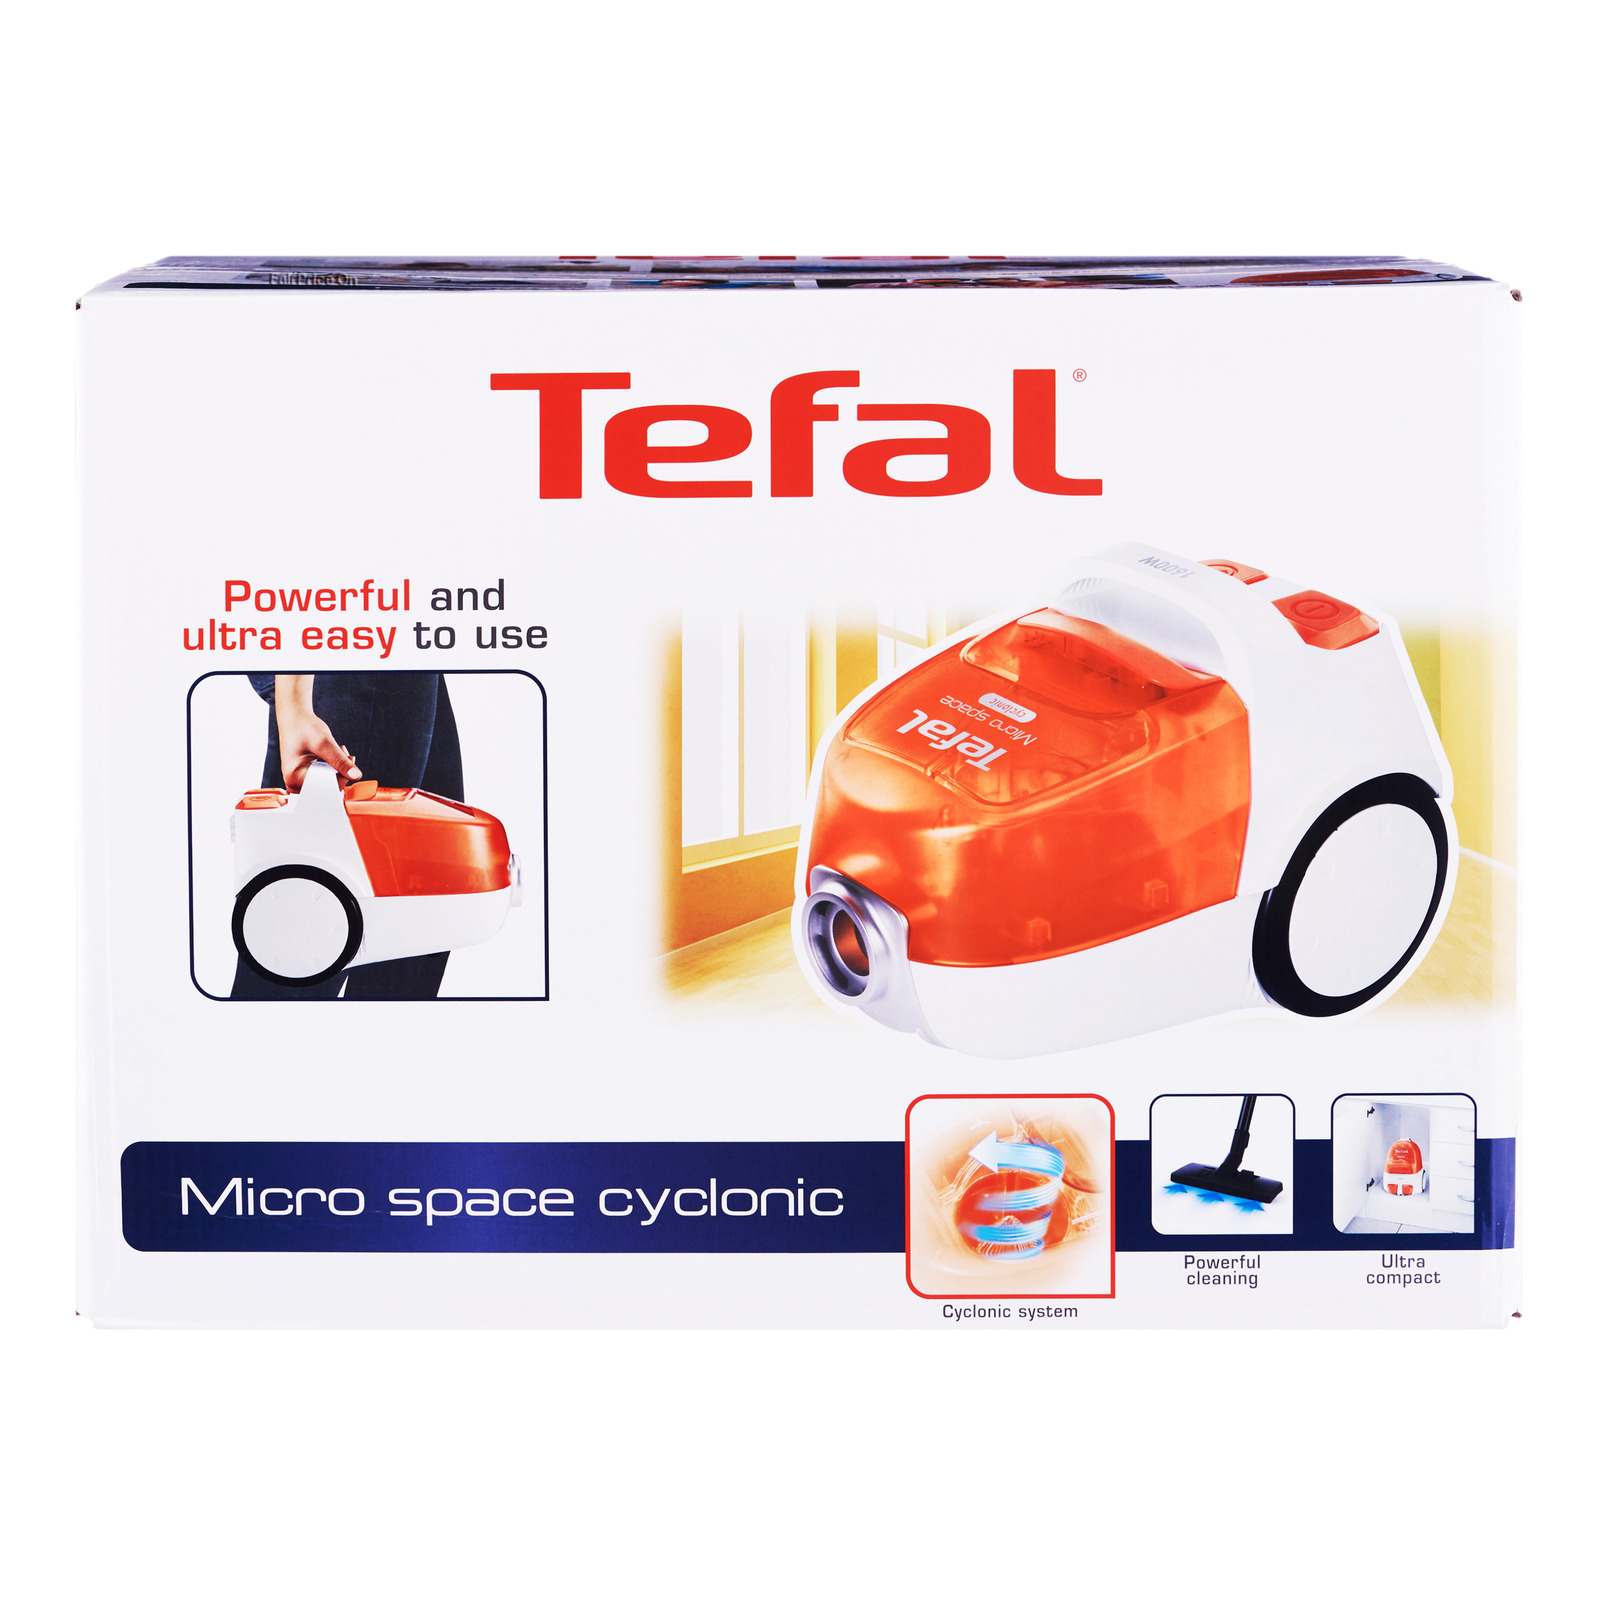 Tefal Vacuum Cleaner - Micro Space Cyclonic (TW3233HH)